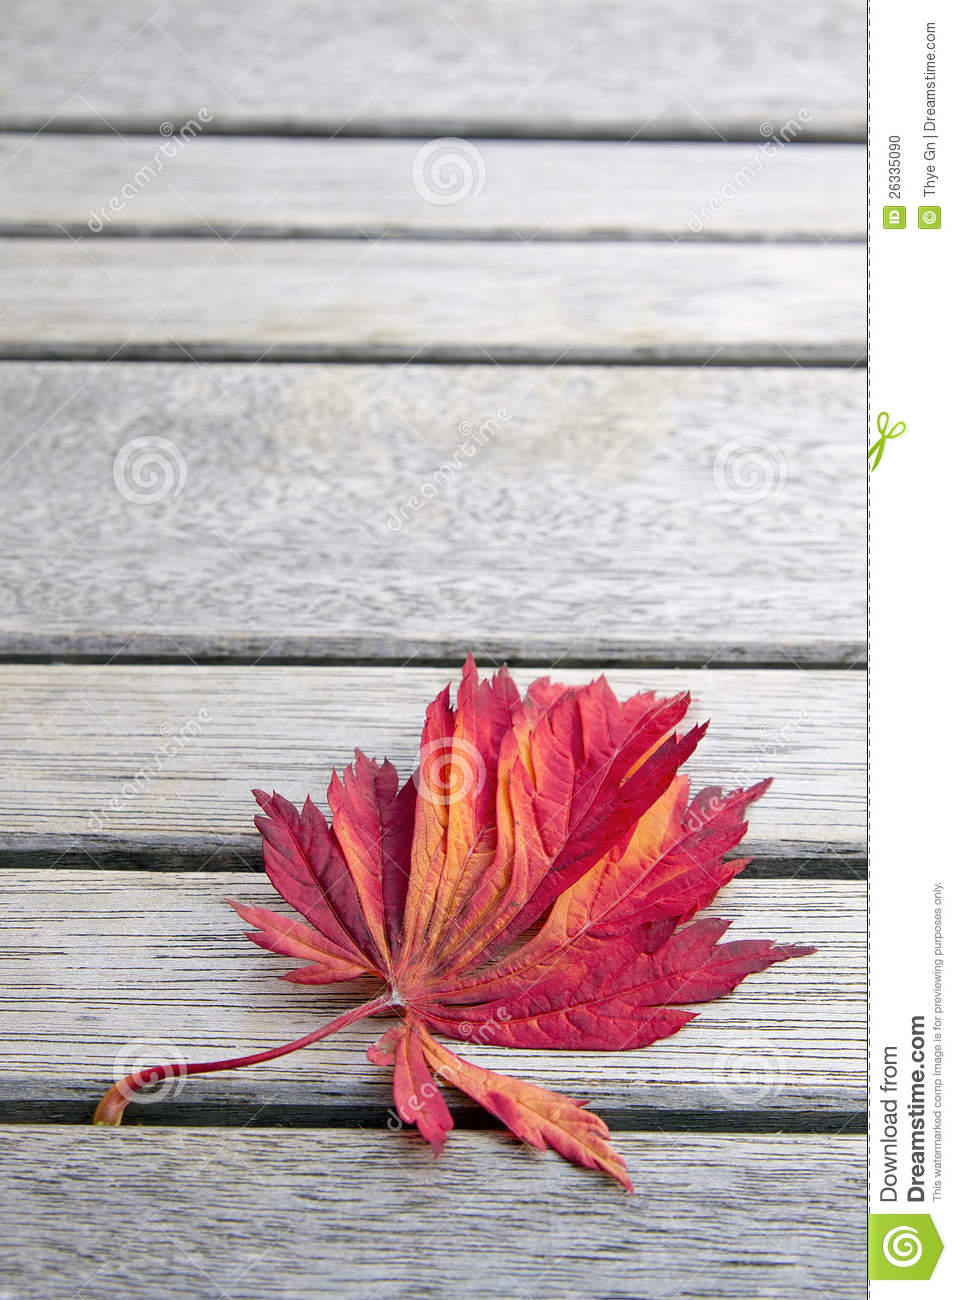 Red Japanese Maple Leaf On Wood Bench Background Stock